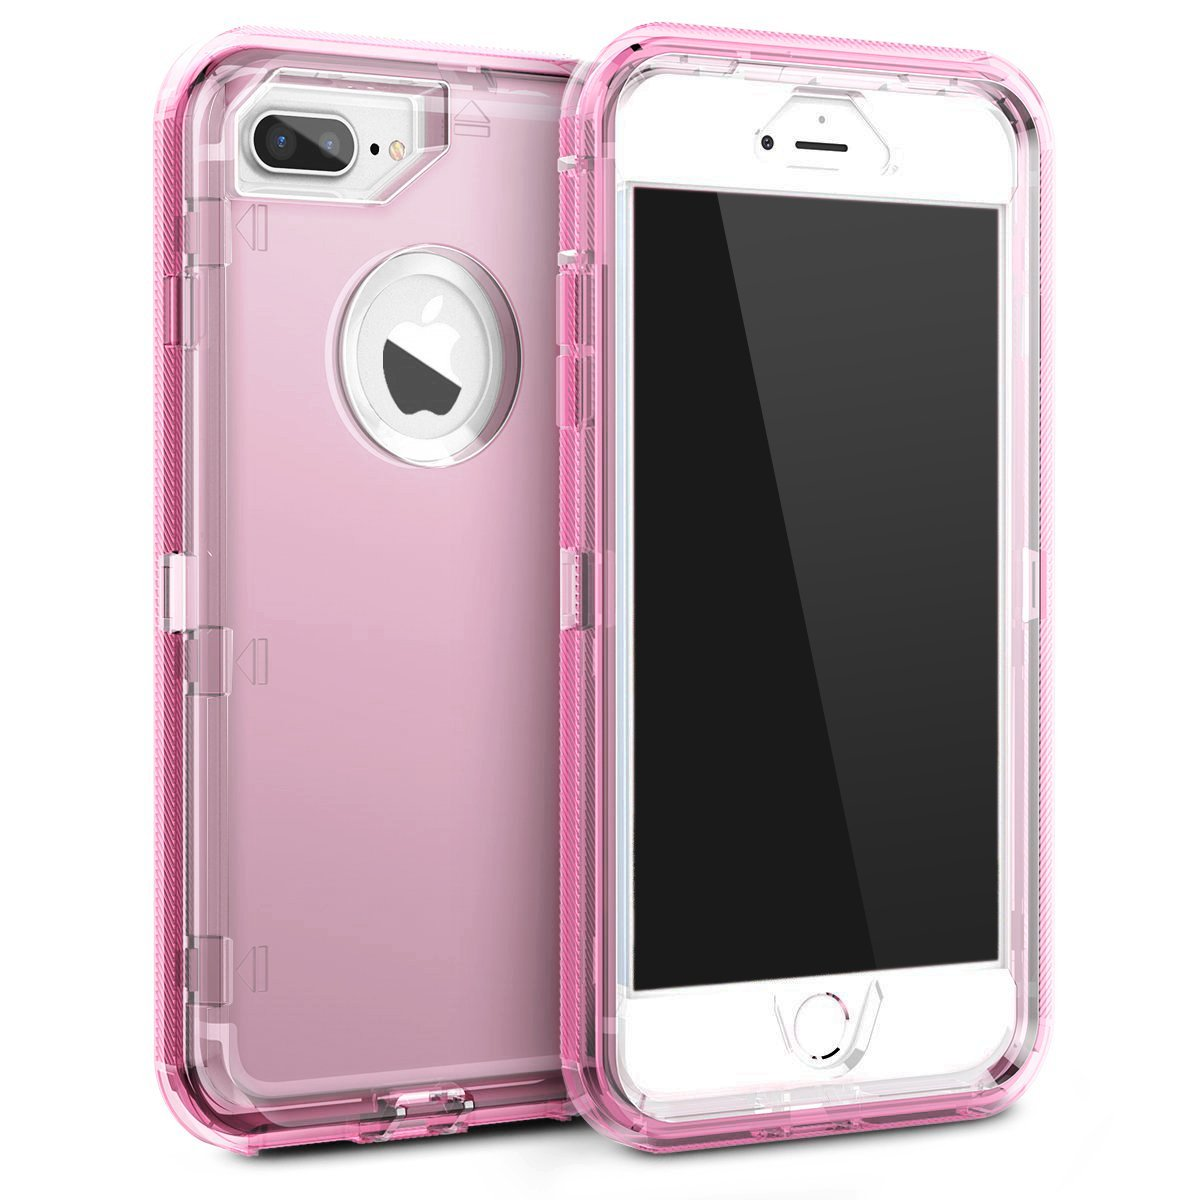 sports shoes c0f81 56d0e MAXCURY iPhone 8 Plus/7 plus/6s Plus/6 Plus Case, Anti-Shock Hybrid  Protective Clear Phone Case 3 in 1 Dual Layer Shockproof Case for iPhone 6  plus/6s ...